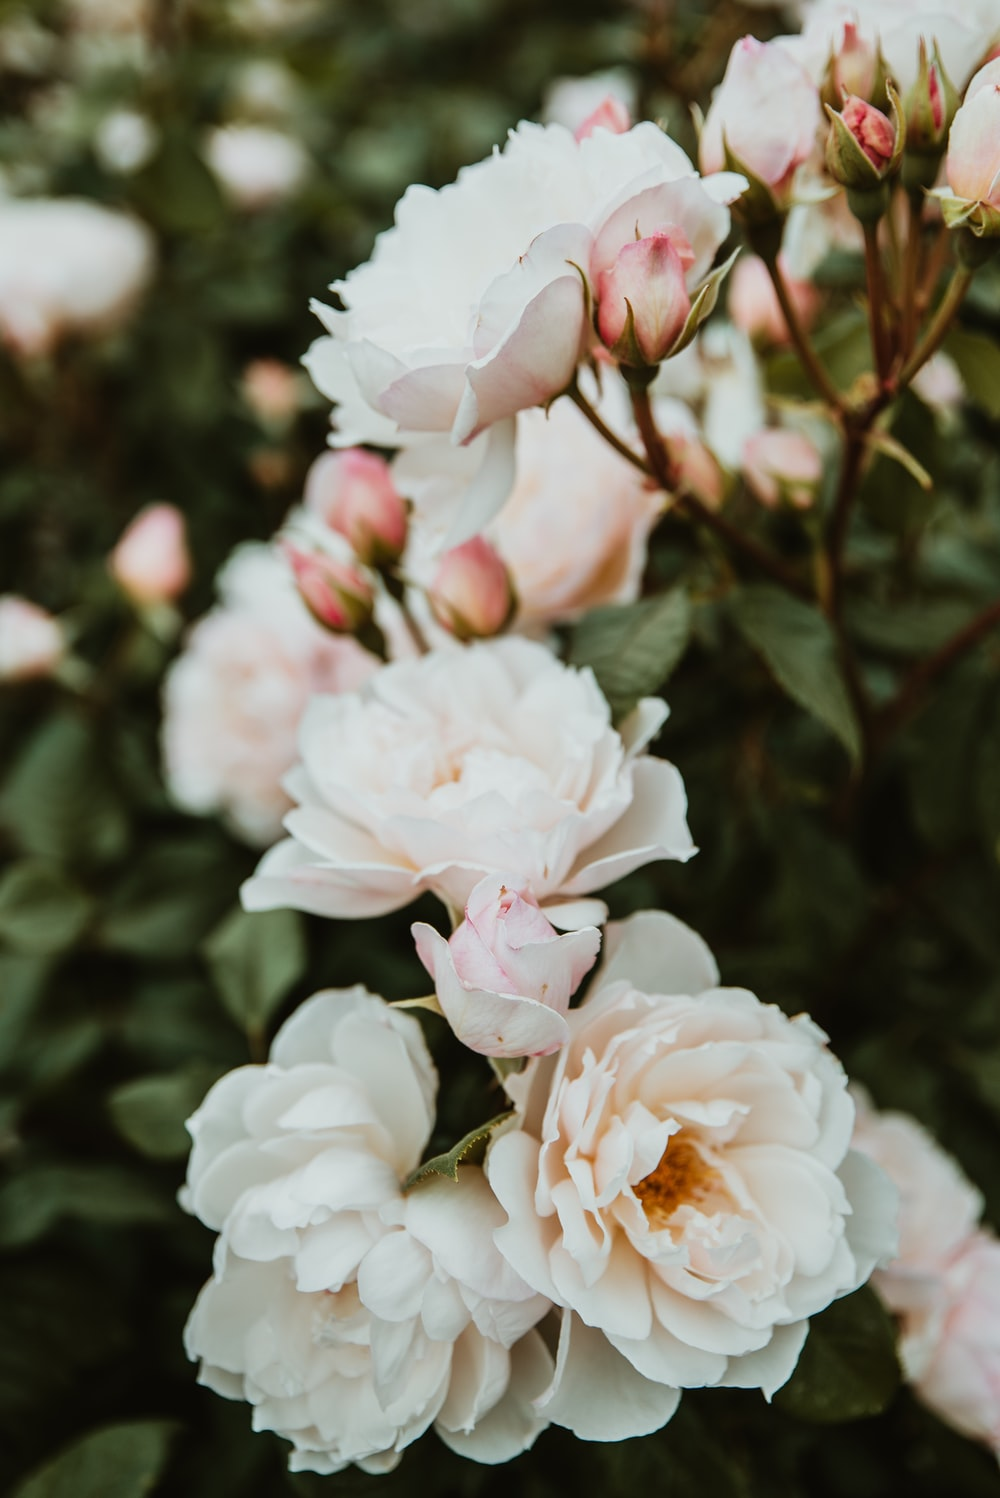 white and pink flowering plants